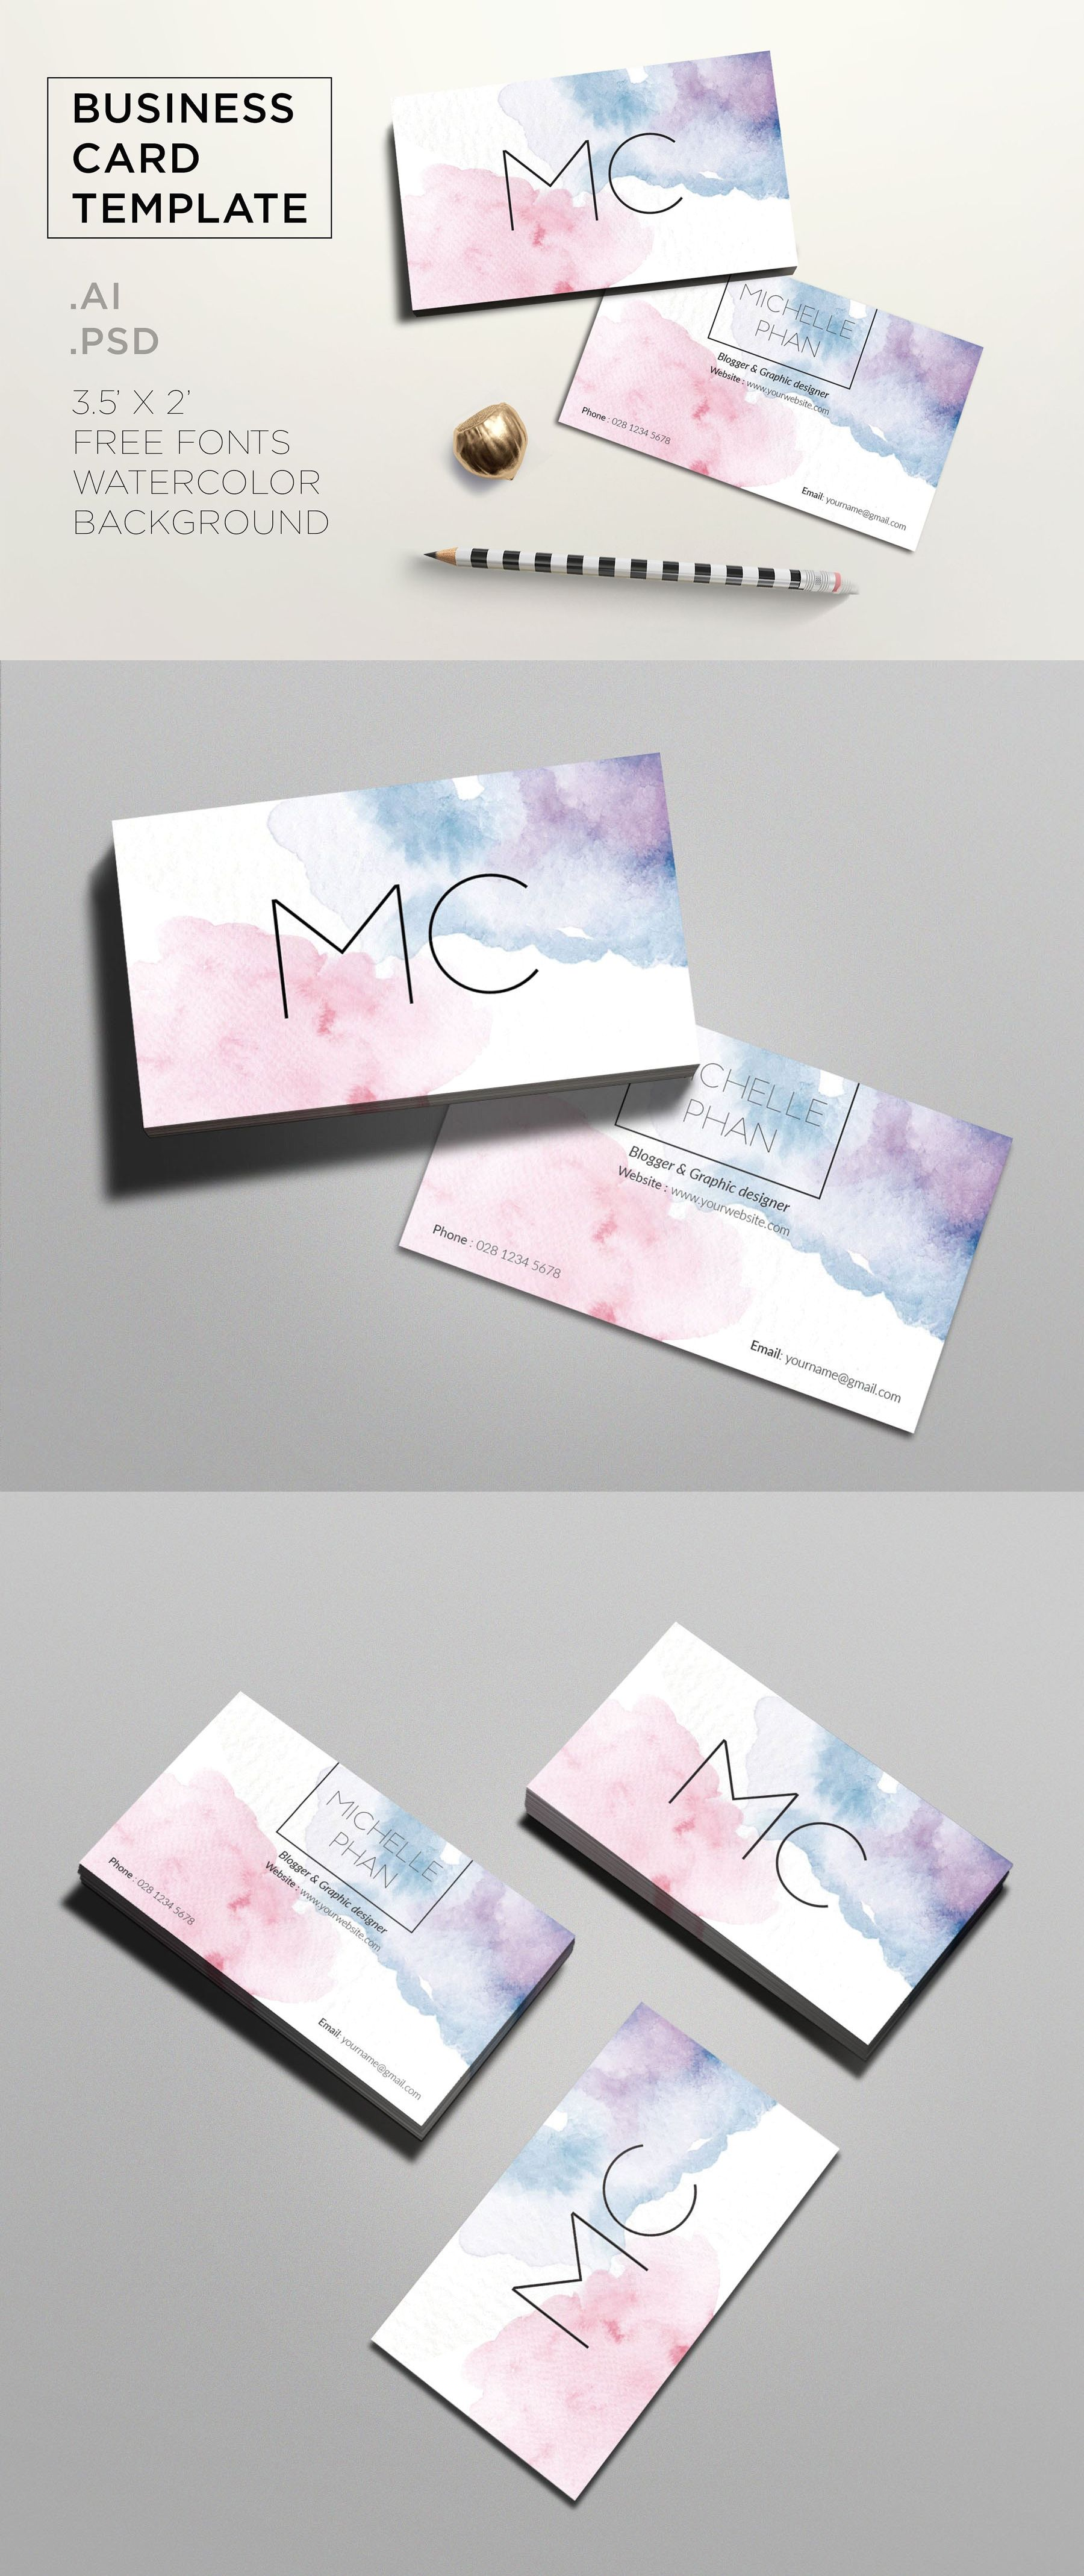 Creative watercolor business card Templates AI, PSD | Business Card ...